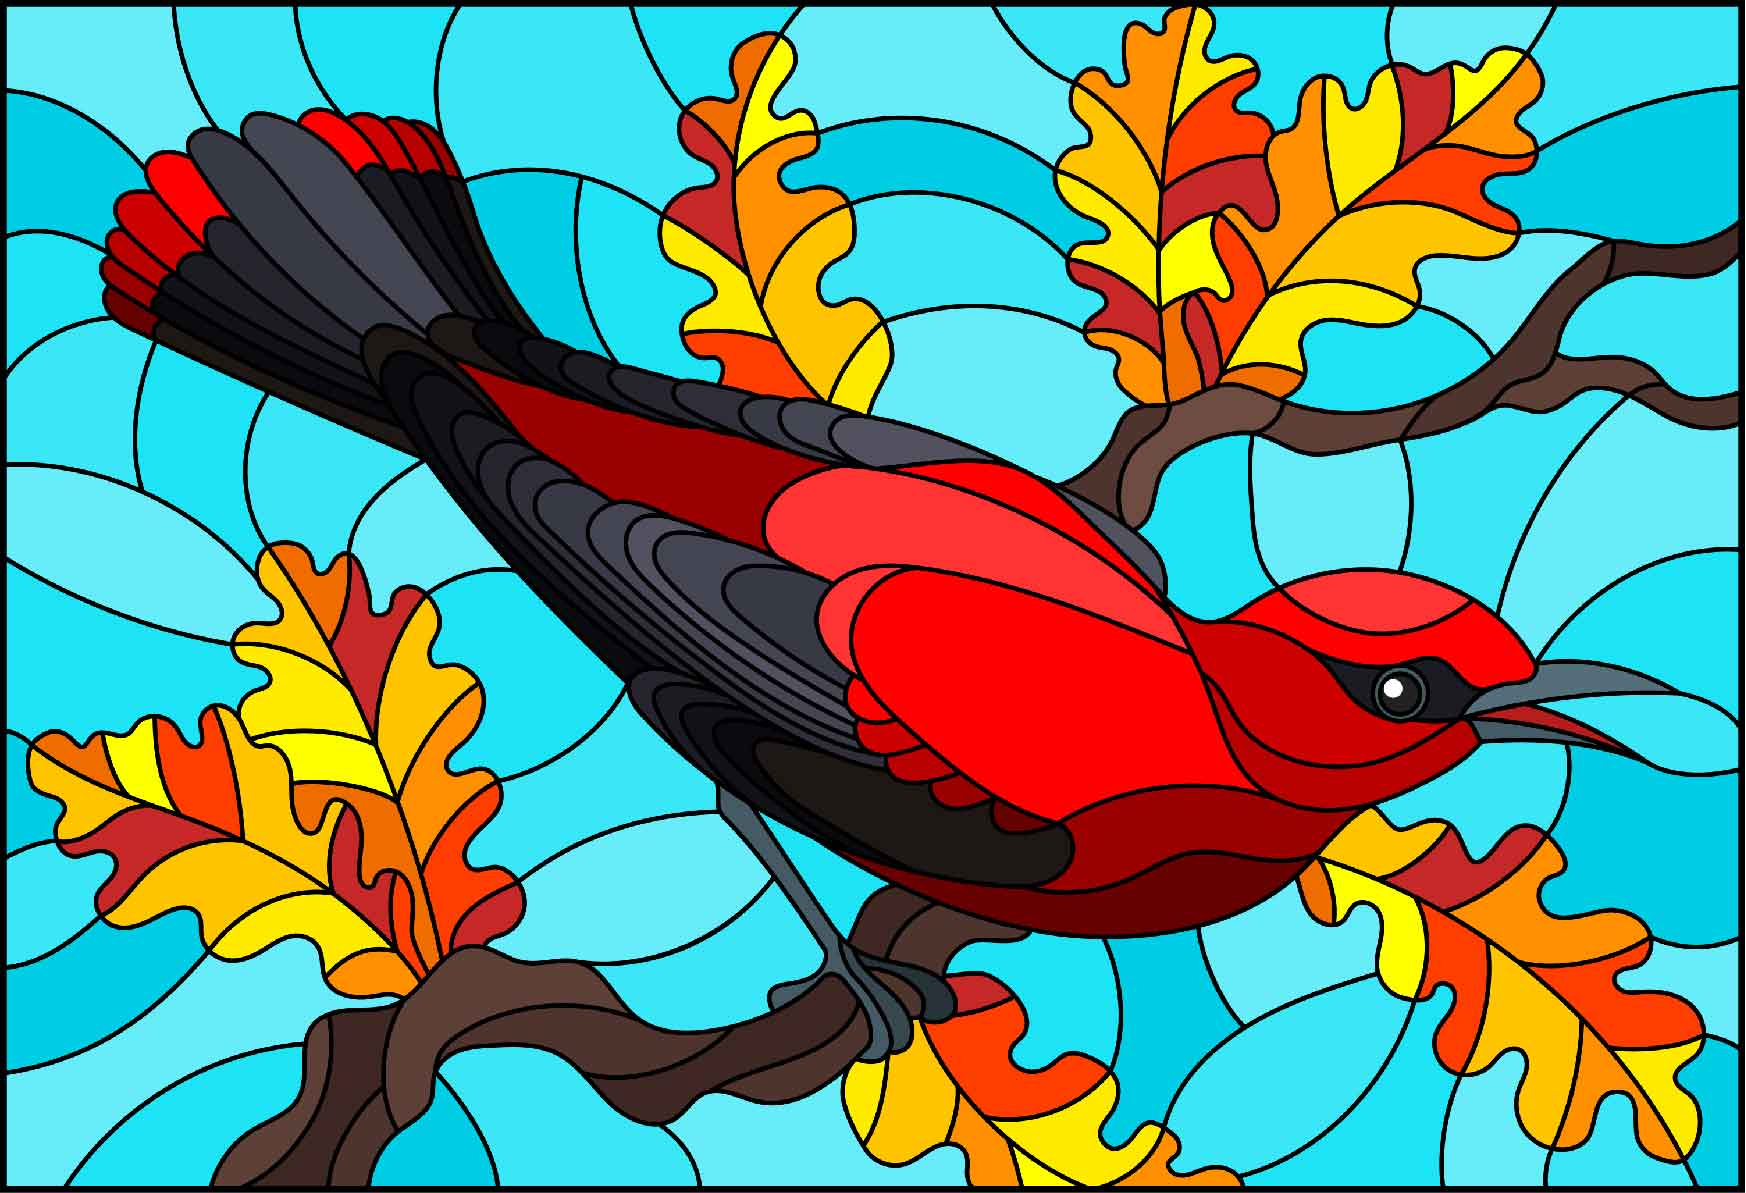 Cardinal image in stained glass window